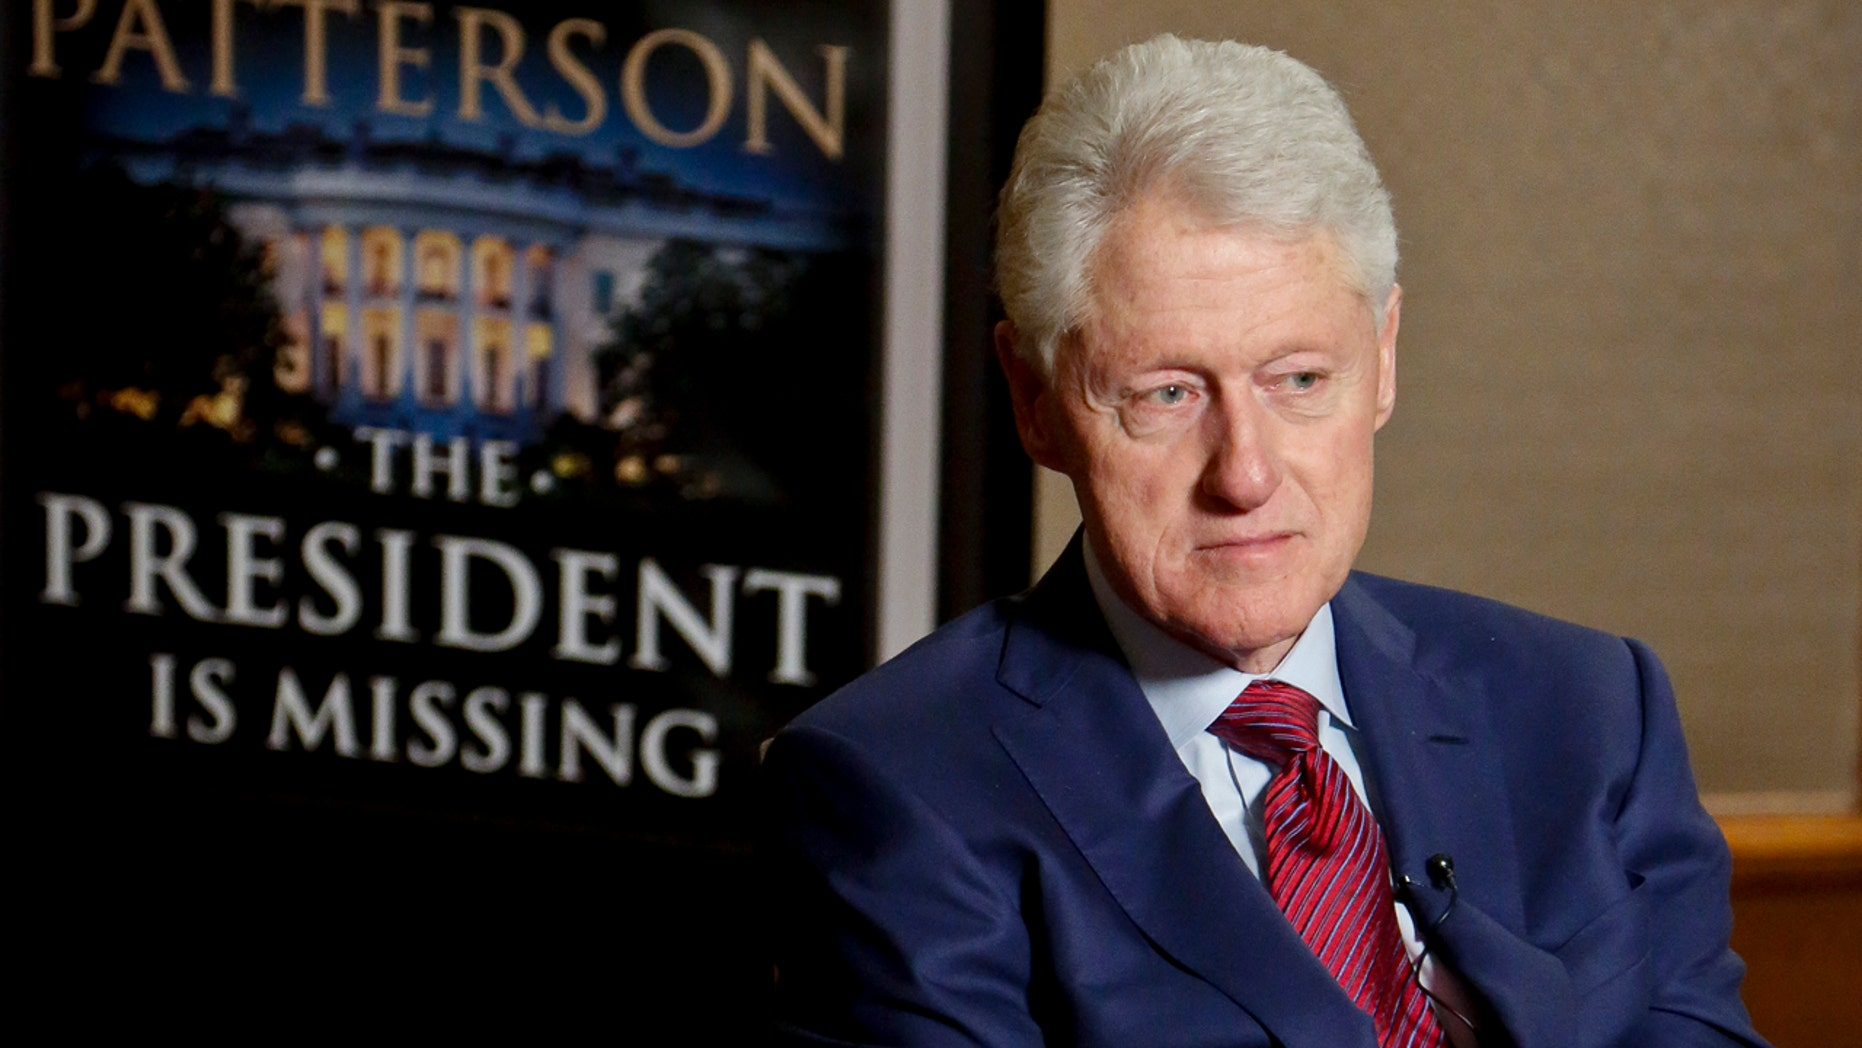 Former President Bill Clinton, seen here in May, said impeachment hearings would have started already if a Democrat were in the Oval Office.